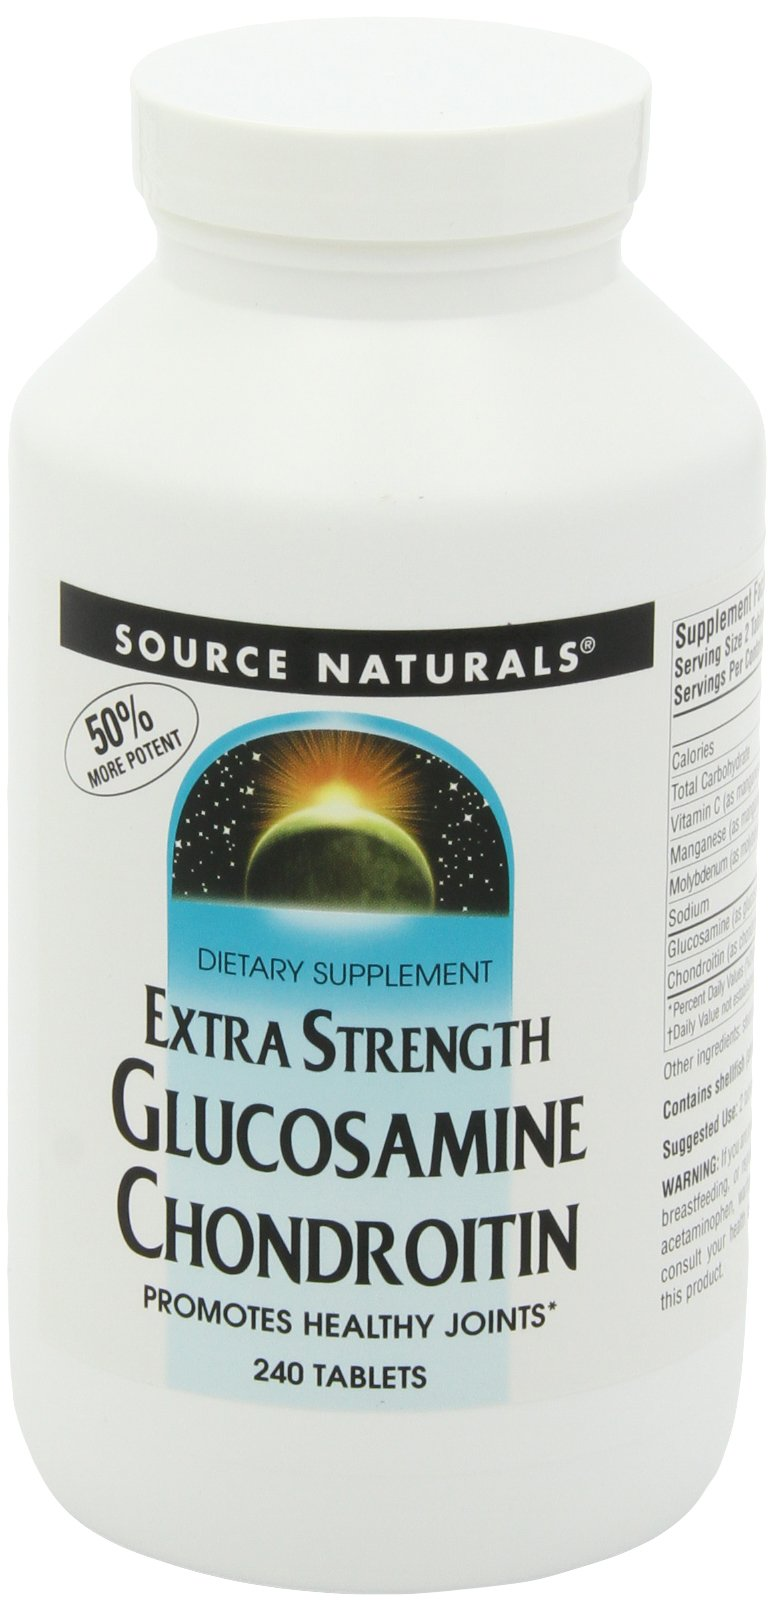 SOURCE NATURALS Glucosamine Chondroitin Extra Strength Tablet, 240 Count